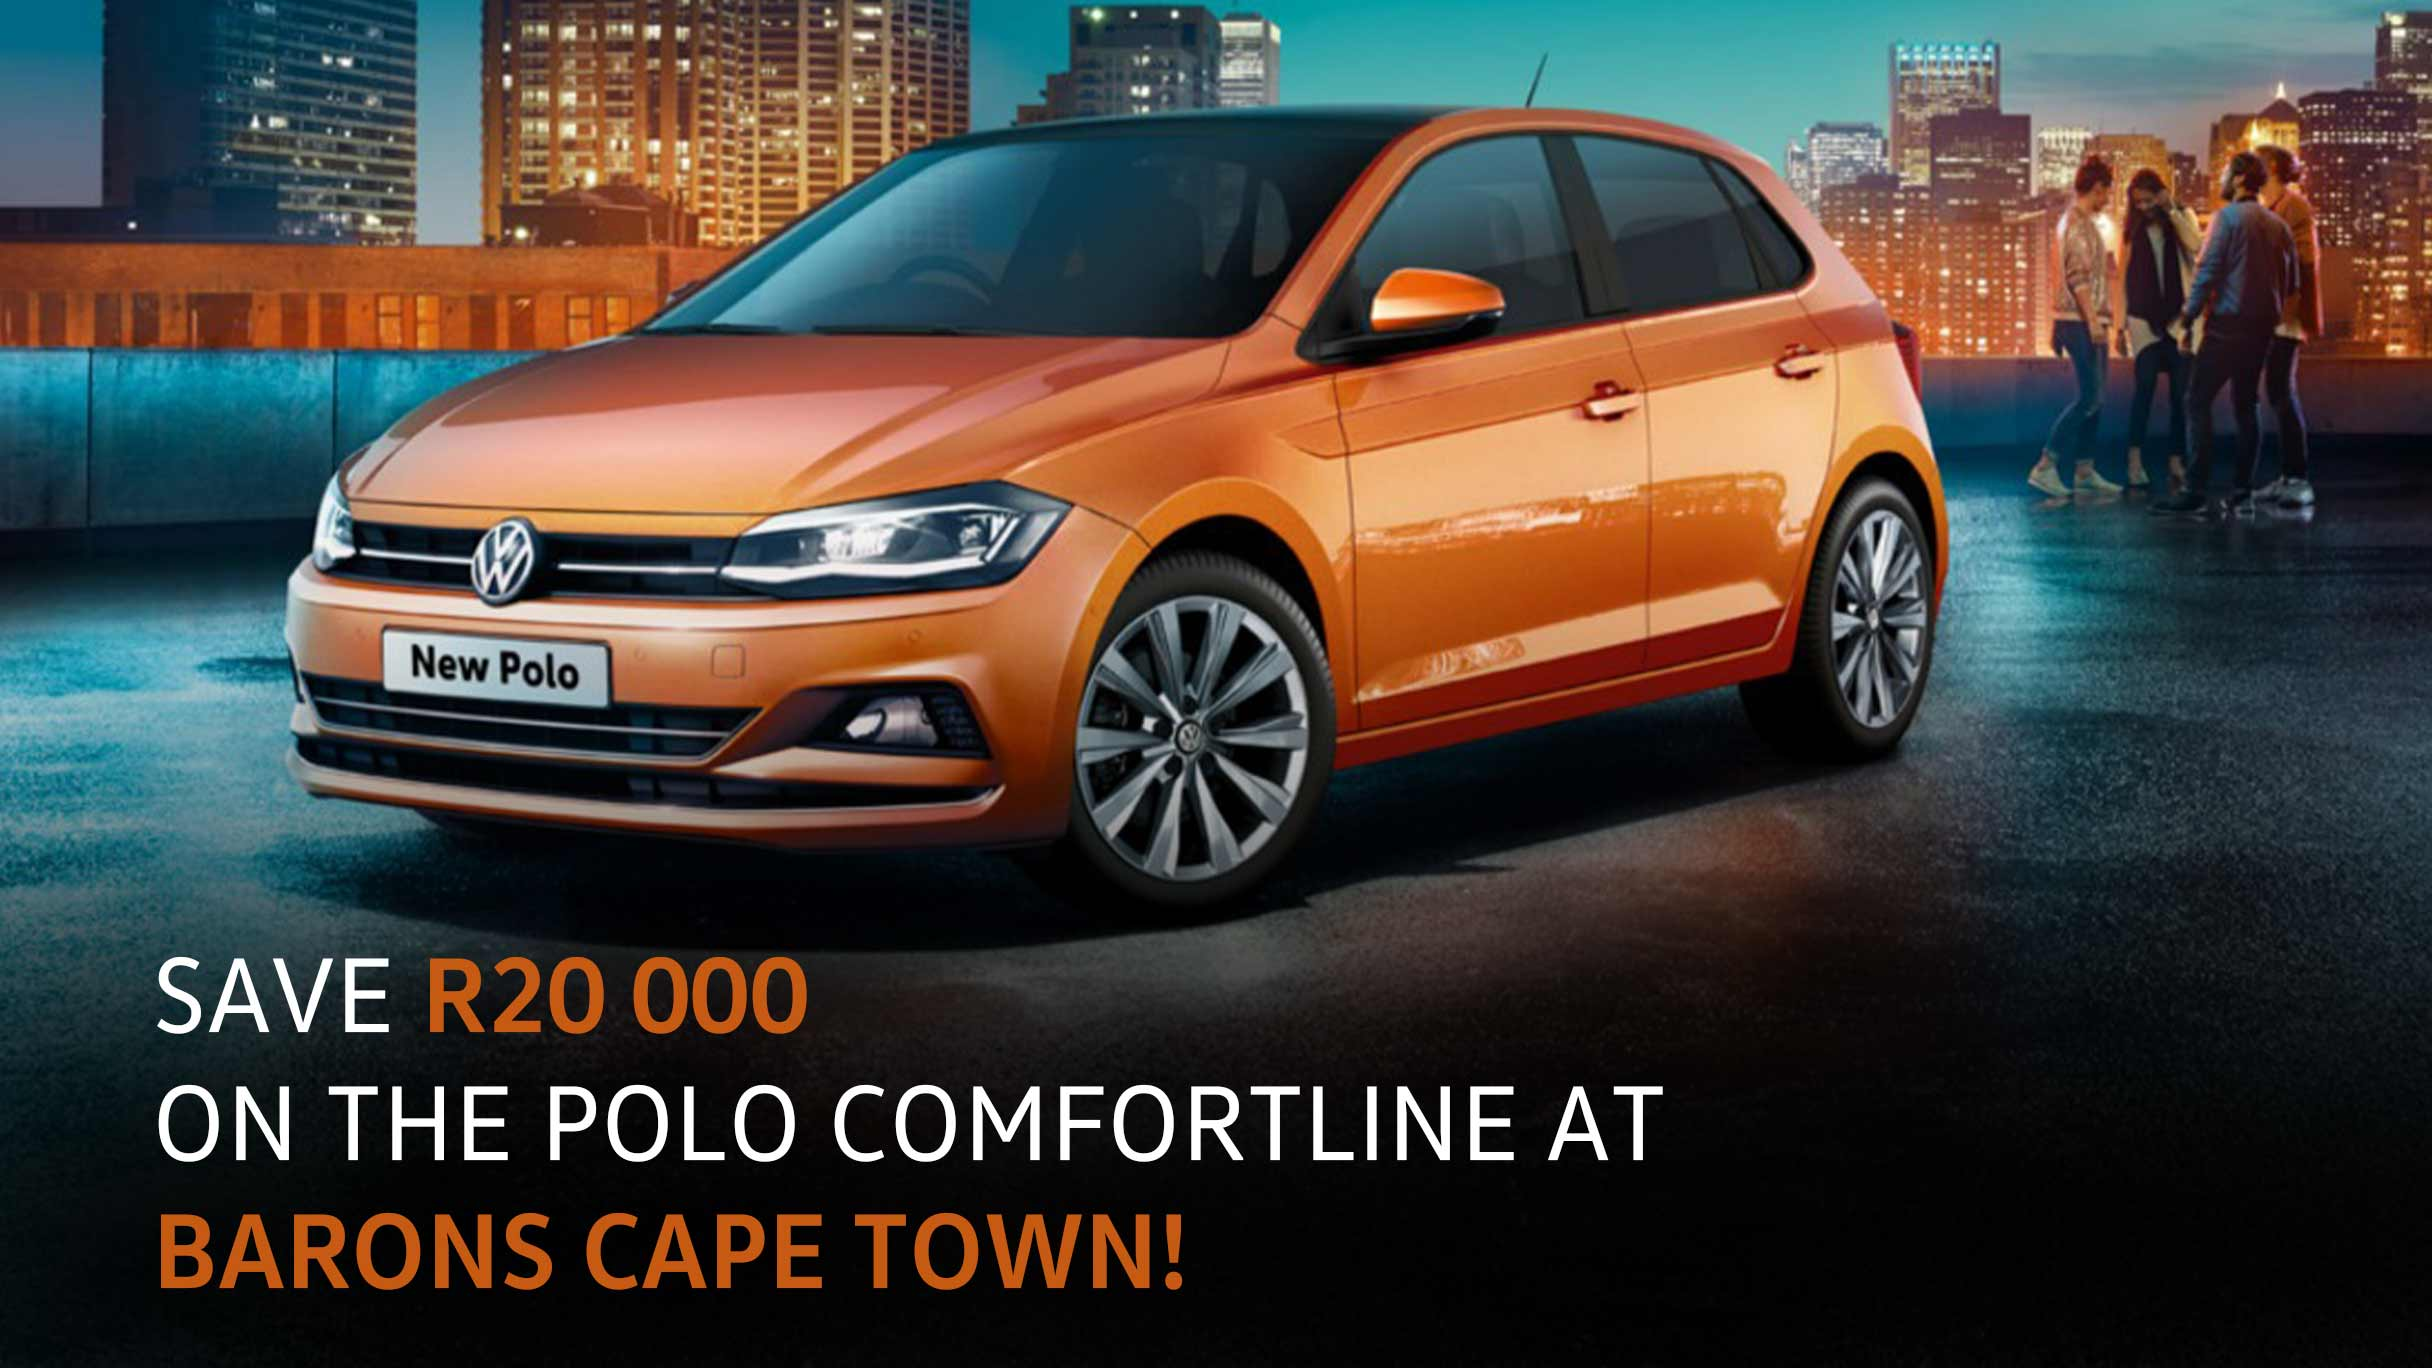 Barons Cape Town polo comfortline special image